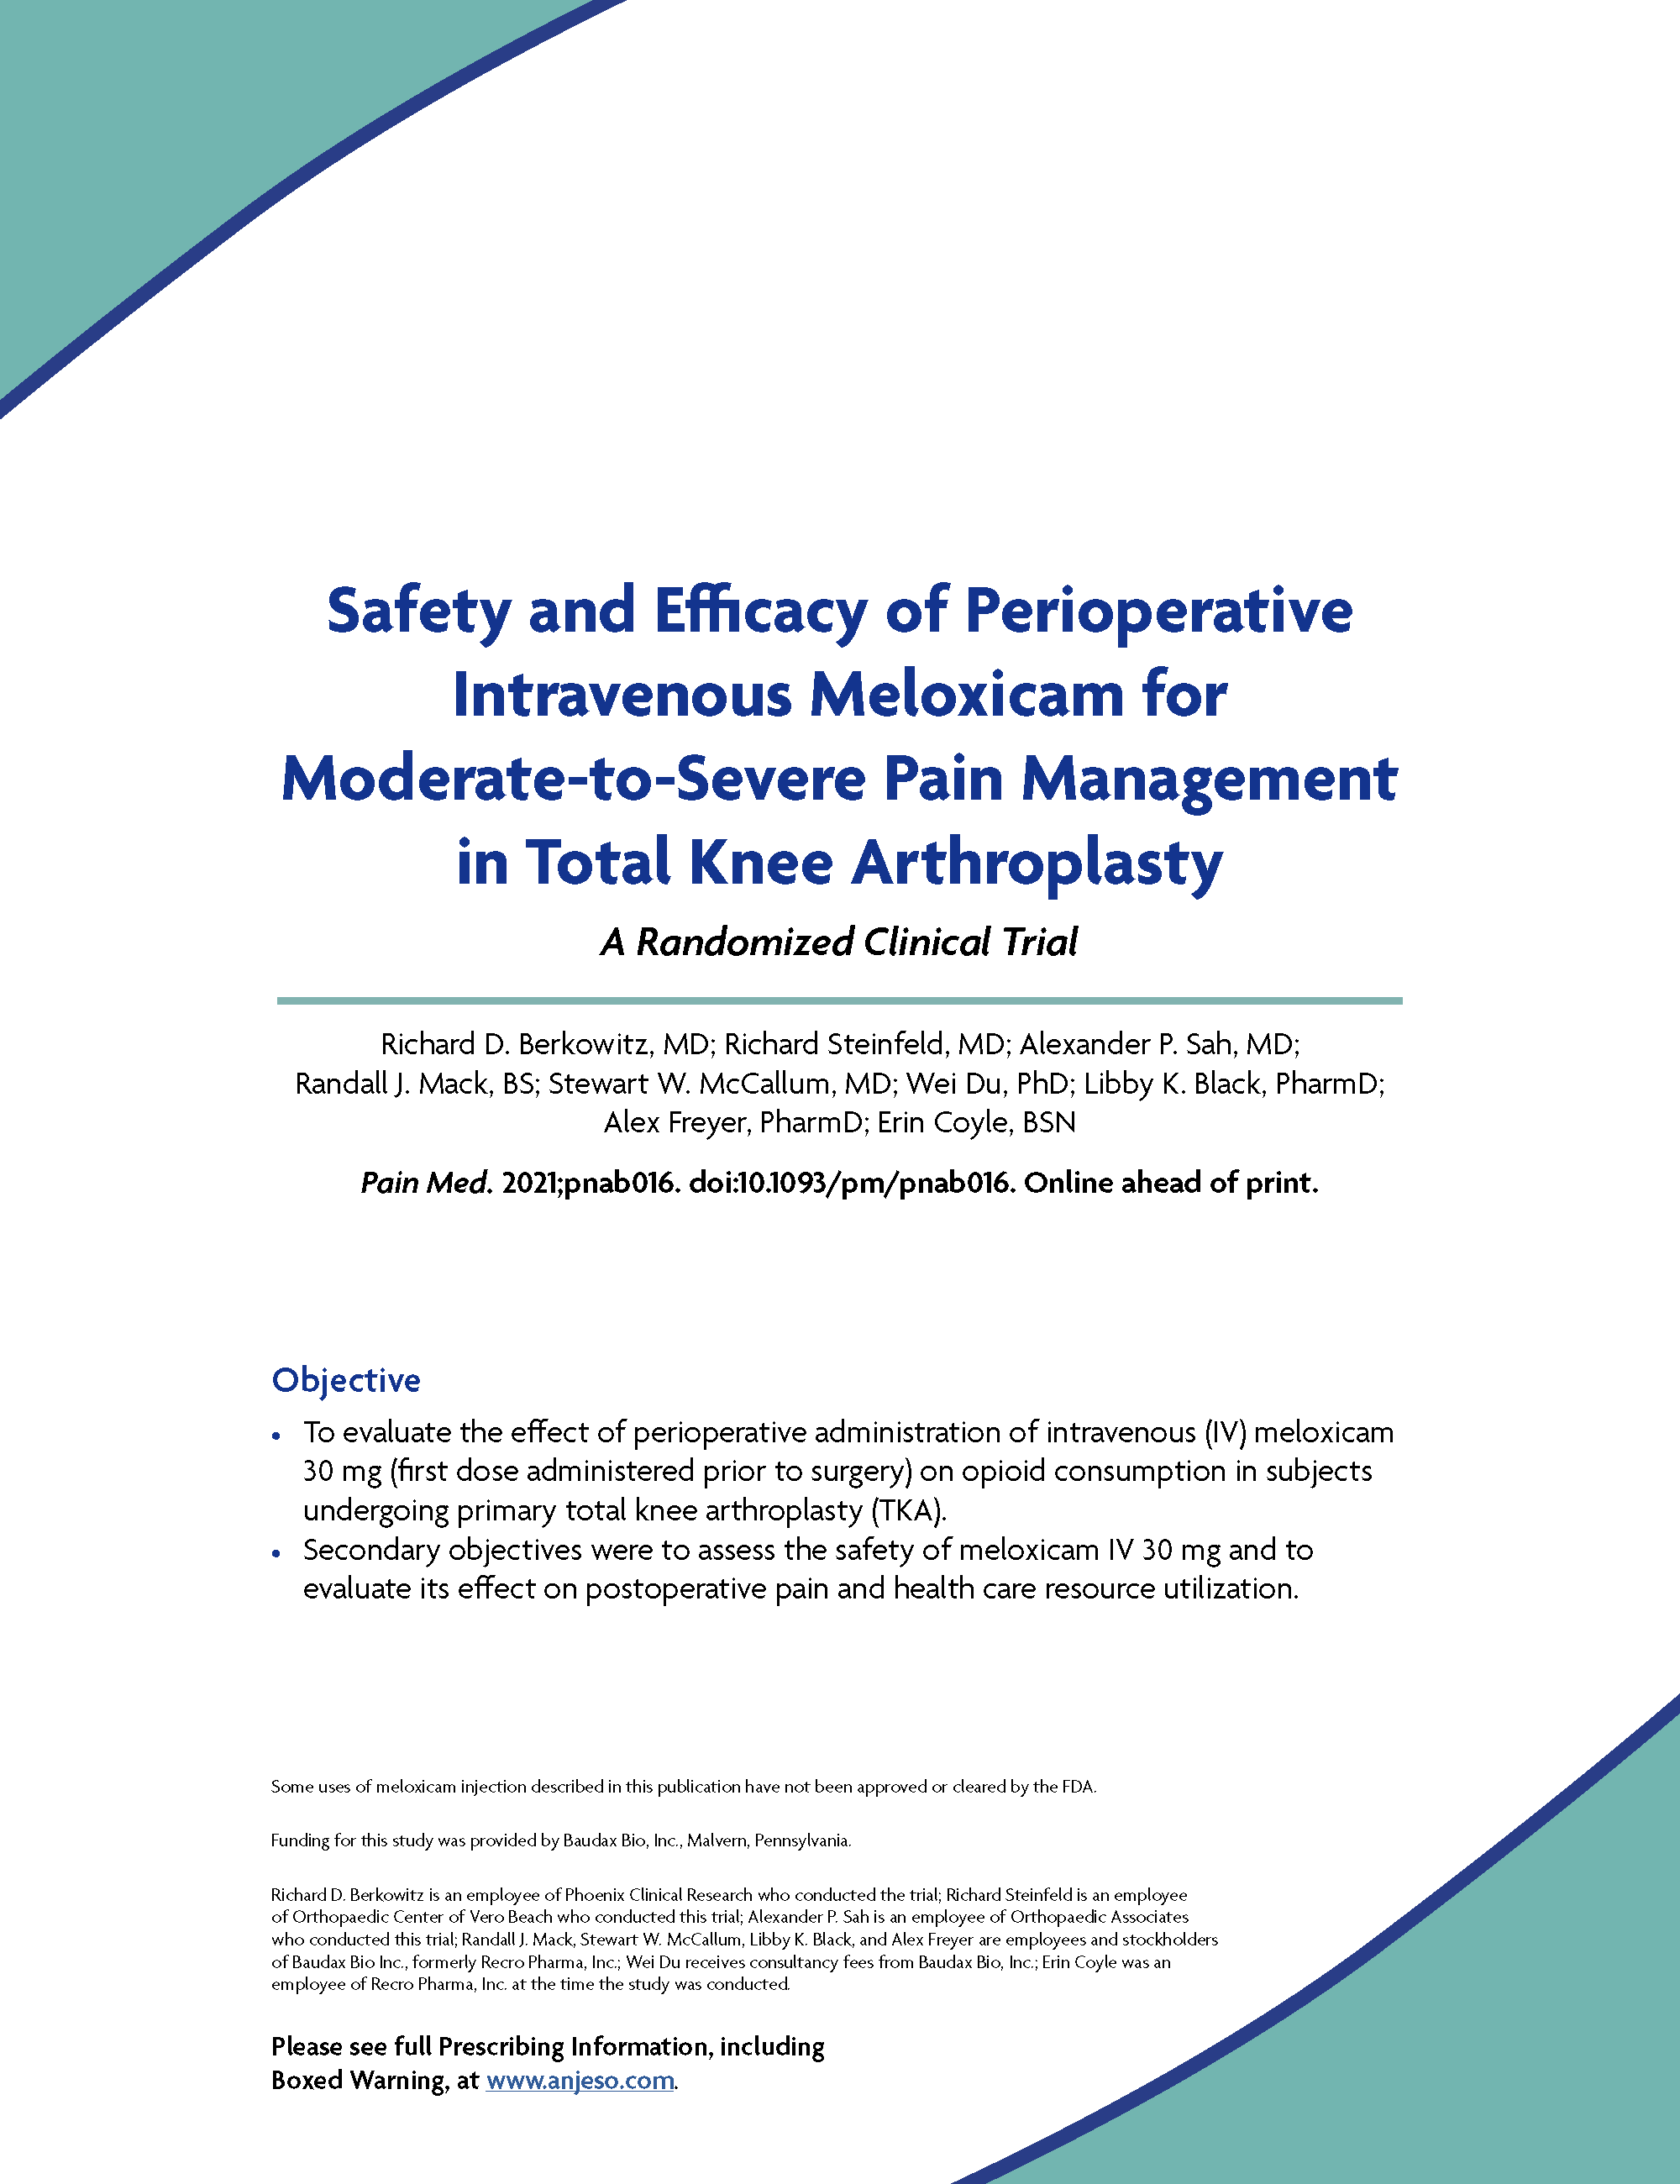 Safety and Efficacy of Perioperative Intravenous Meloxicam for Moderate-to-Severe Pain Management in Total Knee Arthroplasty thumbnail